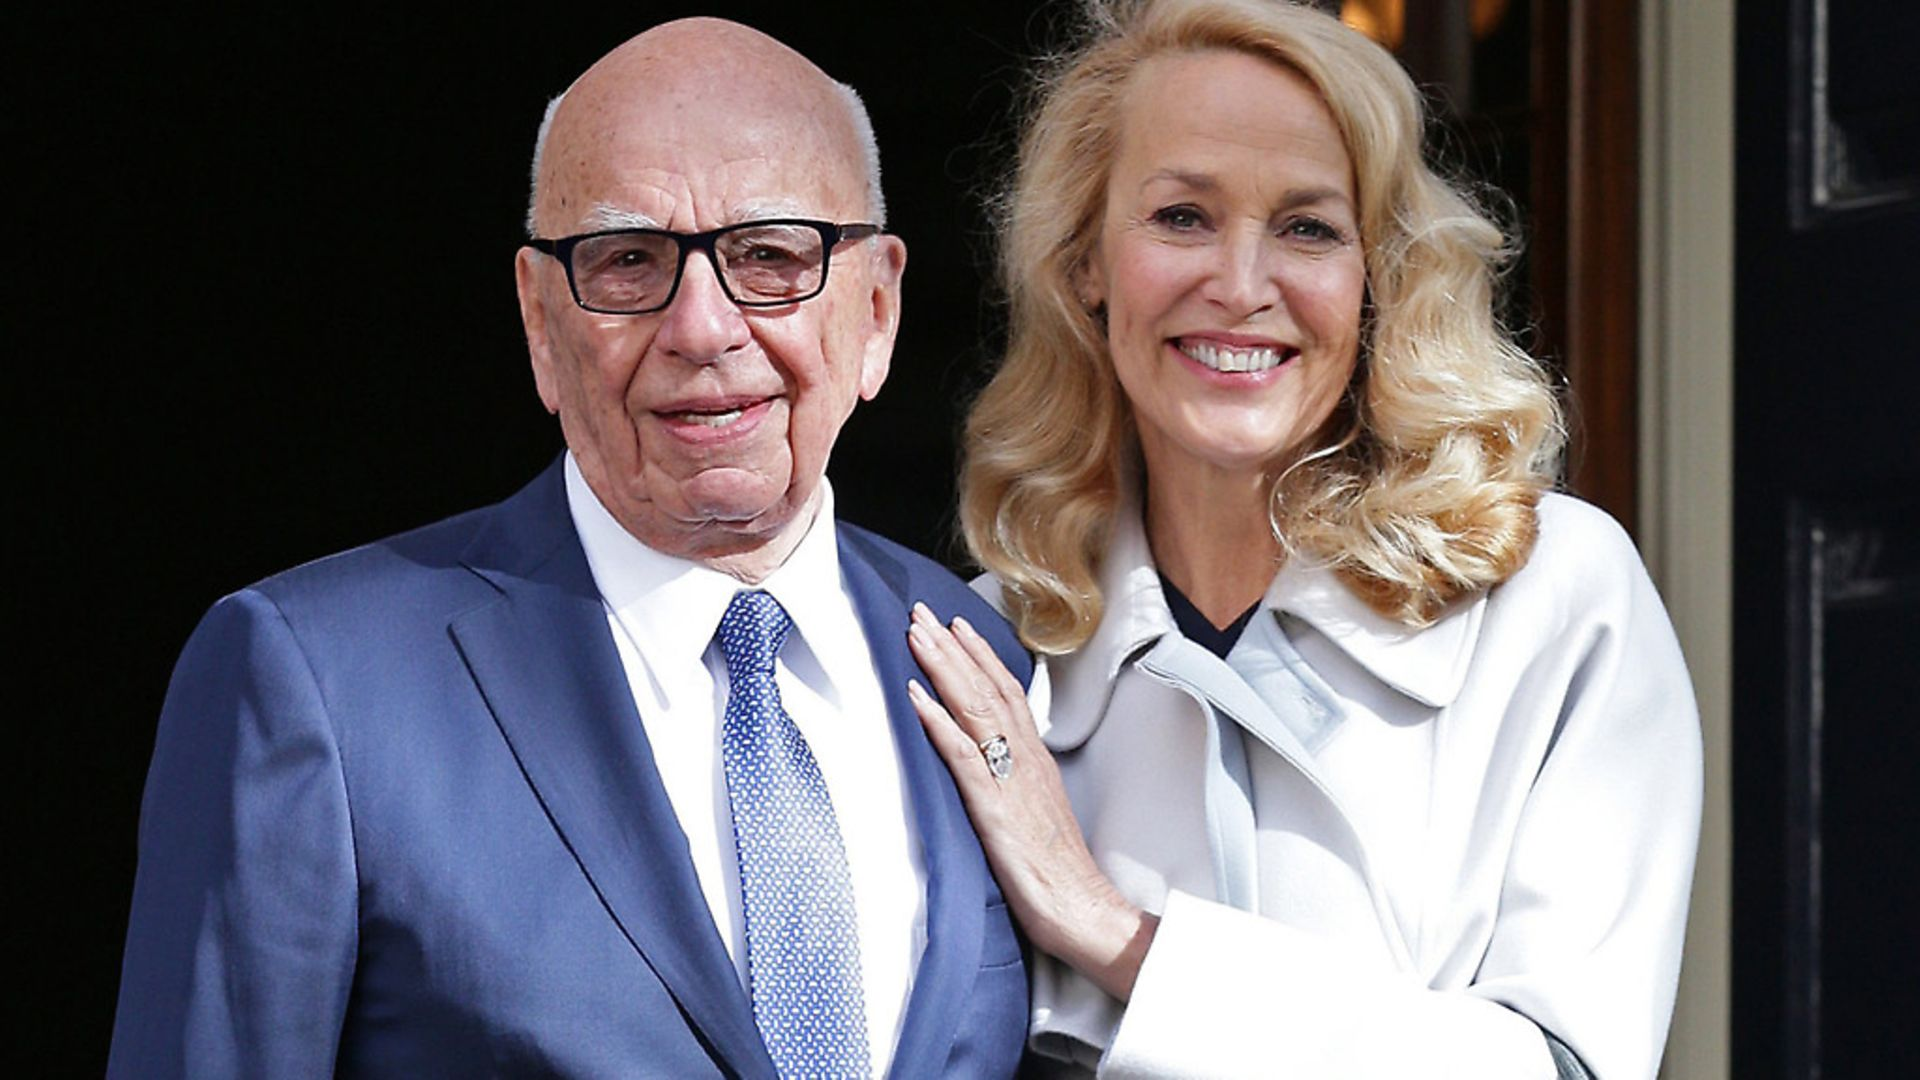 Media mogul Rupert Murdoch and Jerry Hall leave Spencer House, London, after getting married. Photograph: Yui Mok/PA. - Credit: PA Archive/PA Images